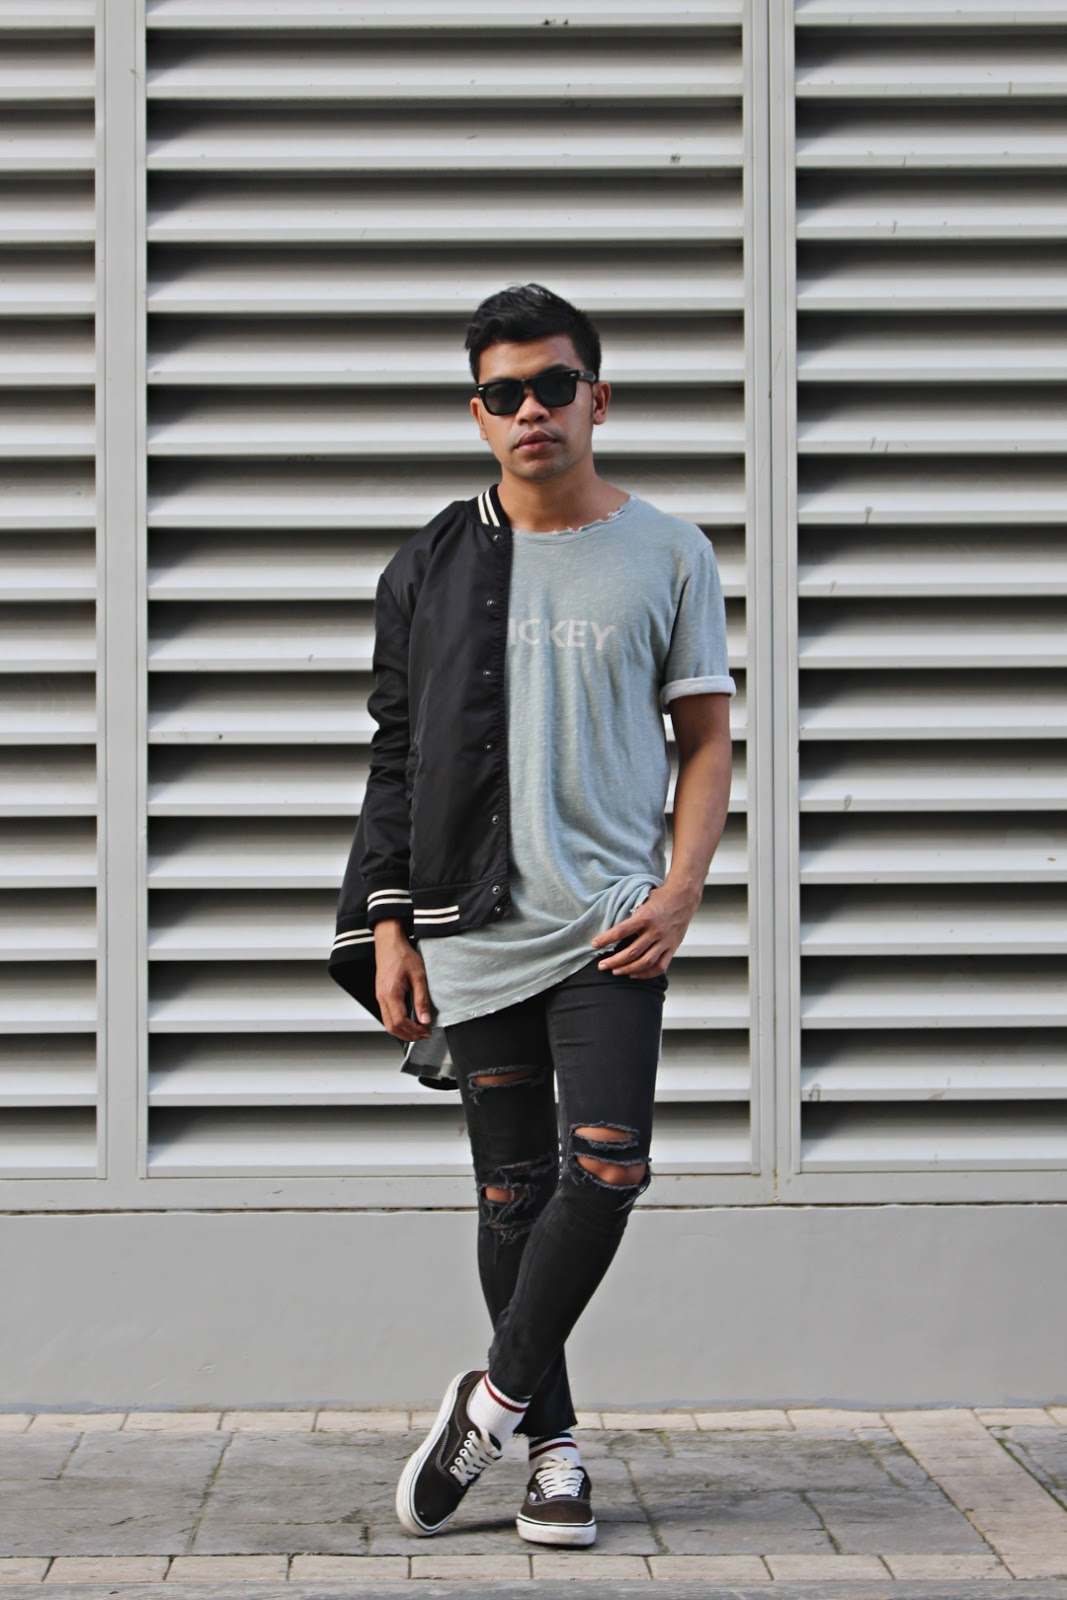 cebu-best-men-fashion-blogger-almostablogger.jpg